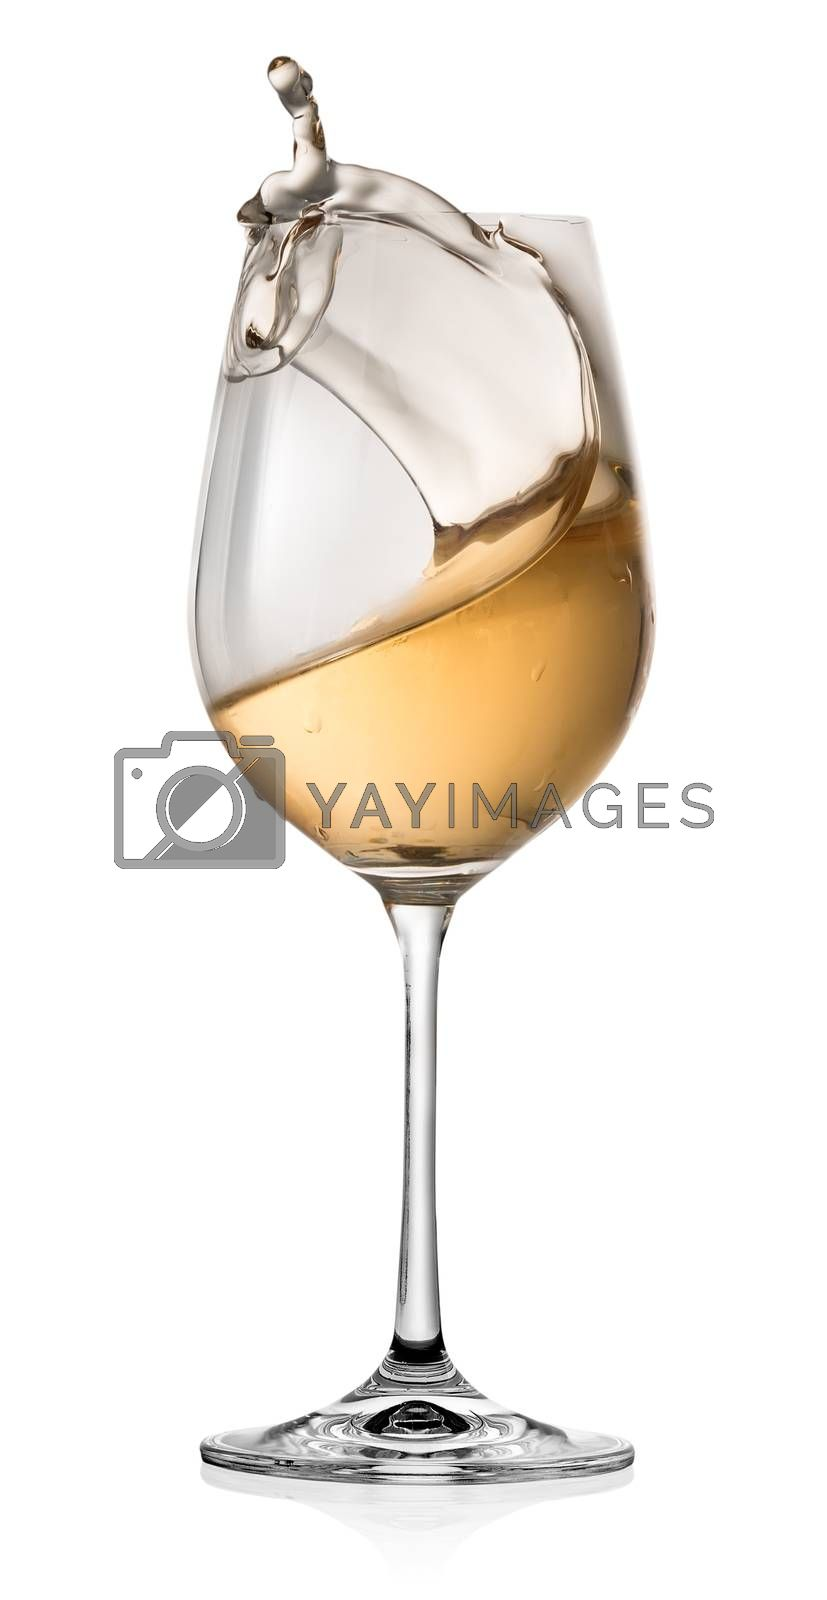 Royalty free image of Moving of alcohol in a glass by Givaga